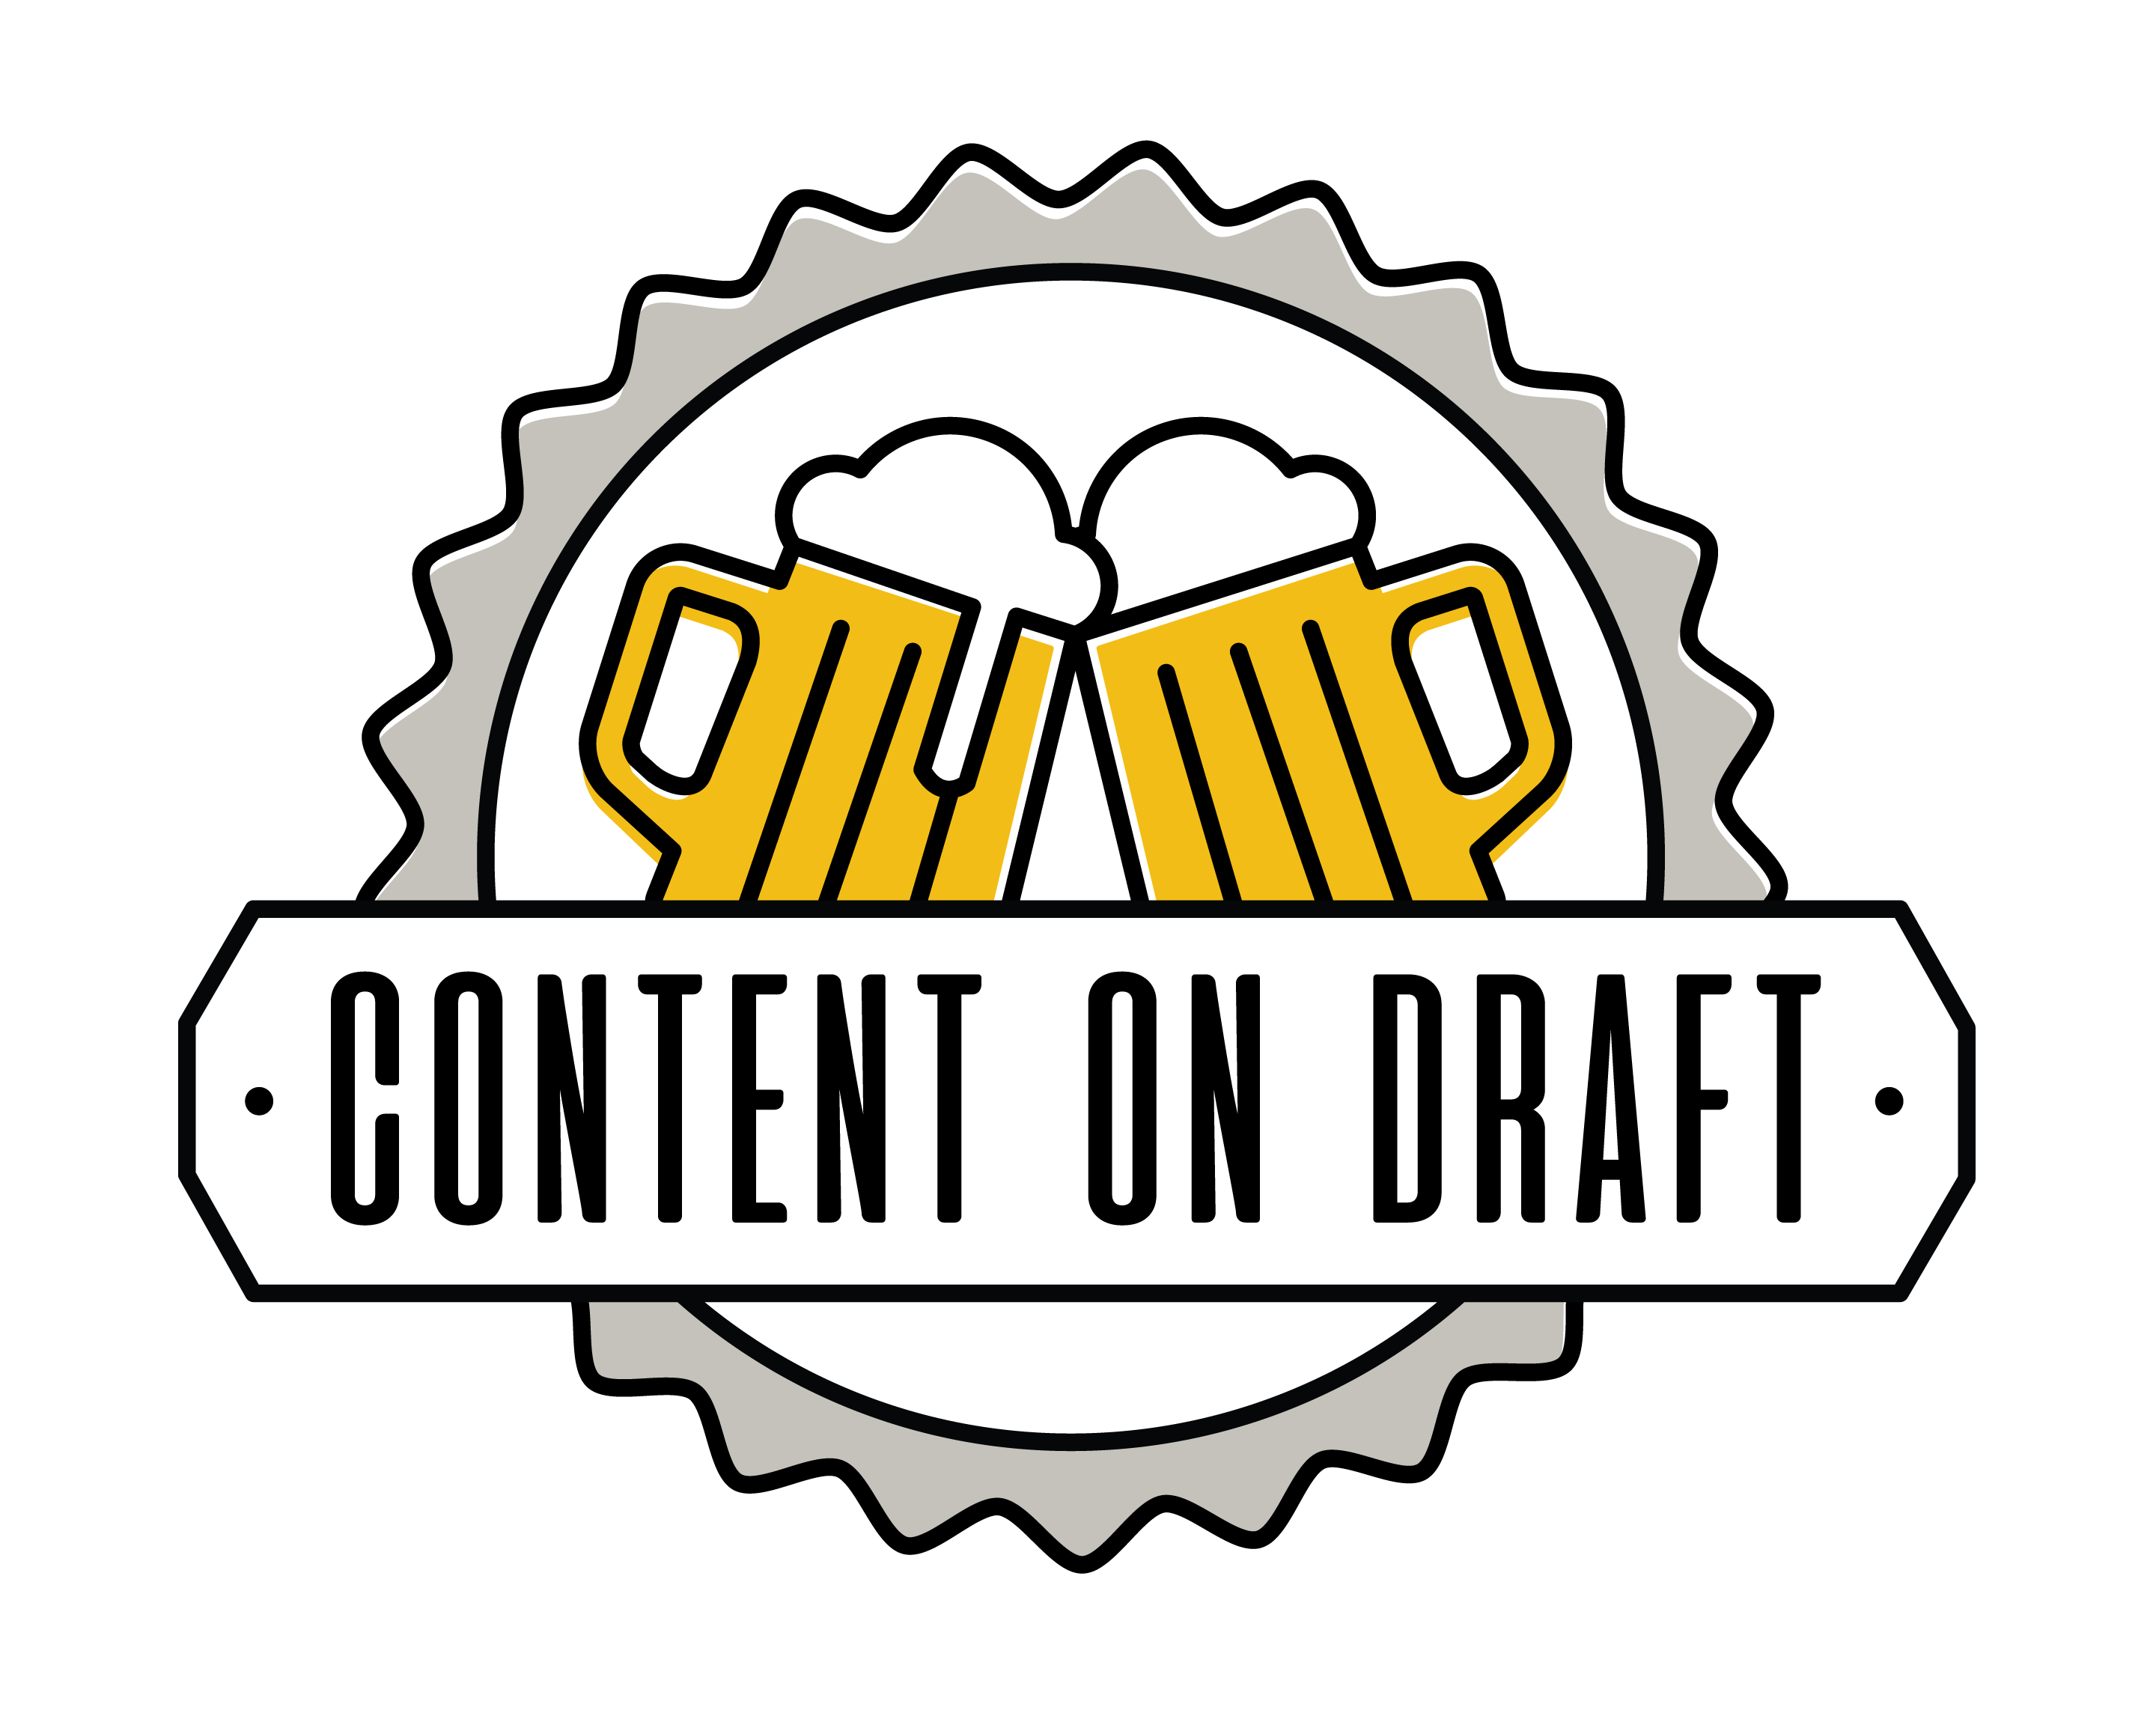 Content on Draft